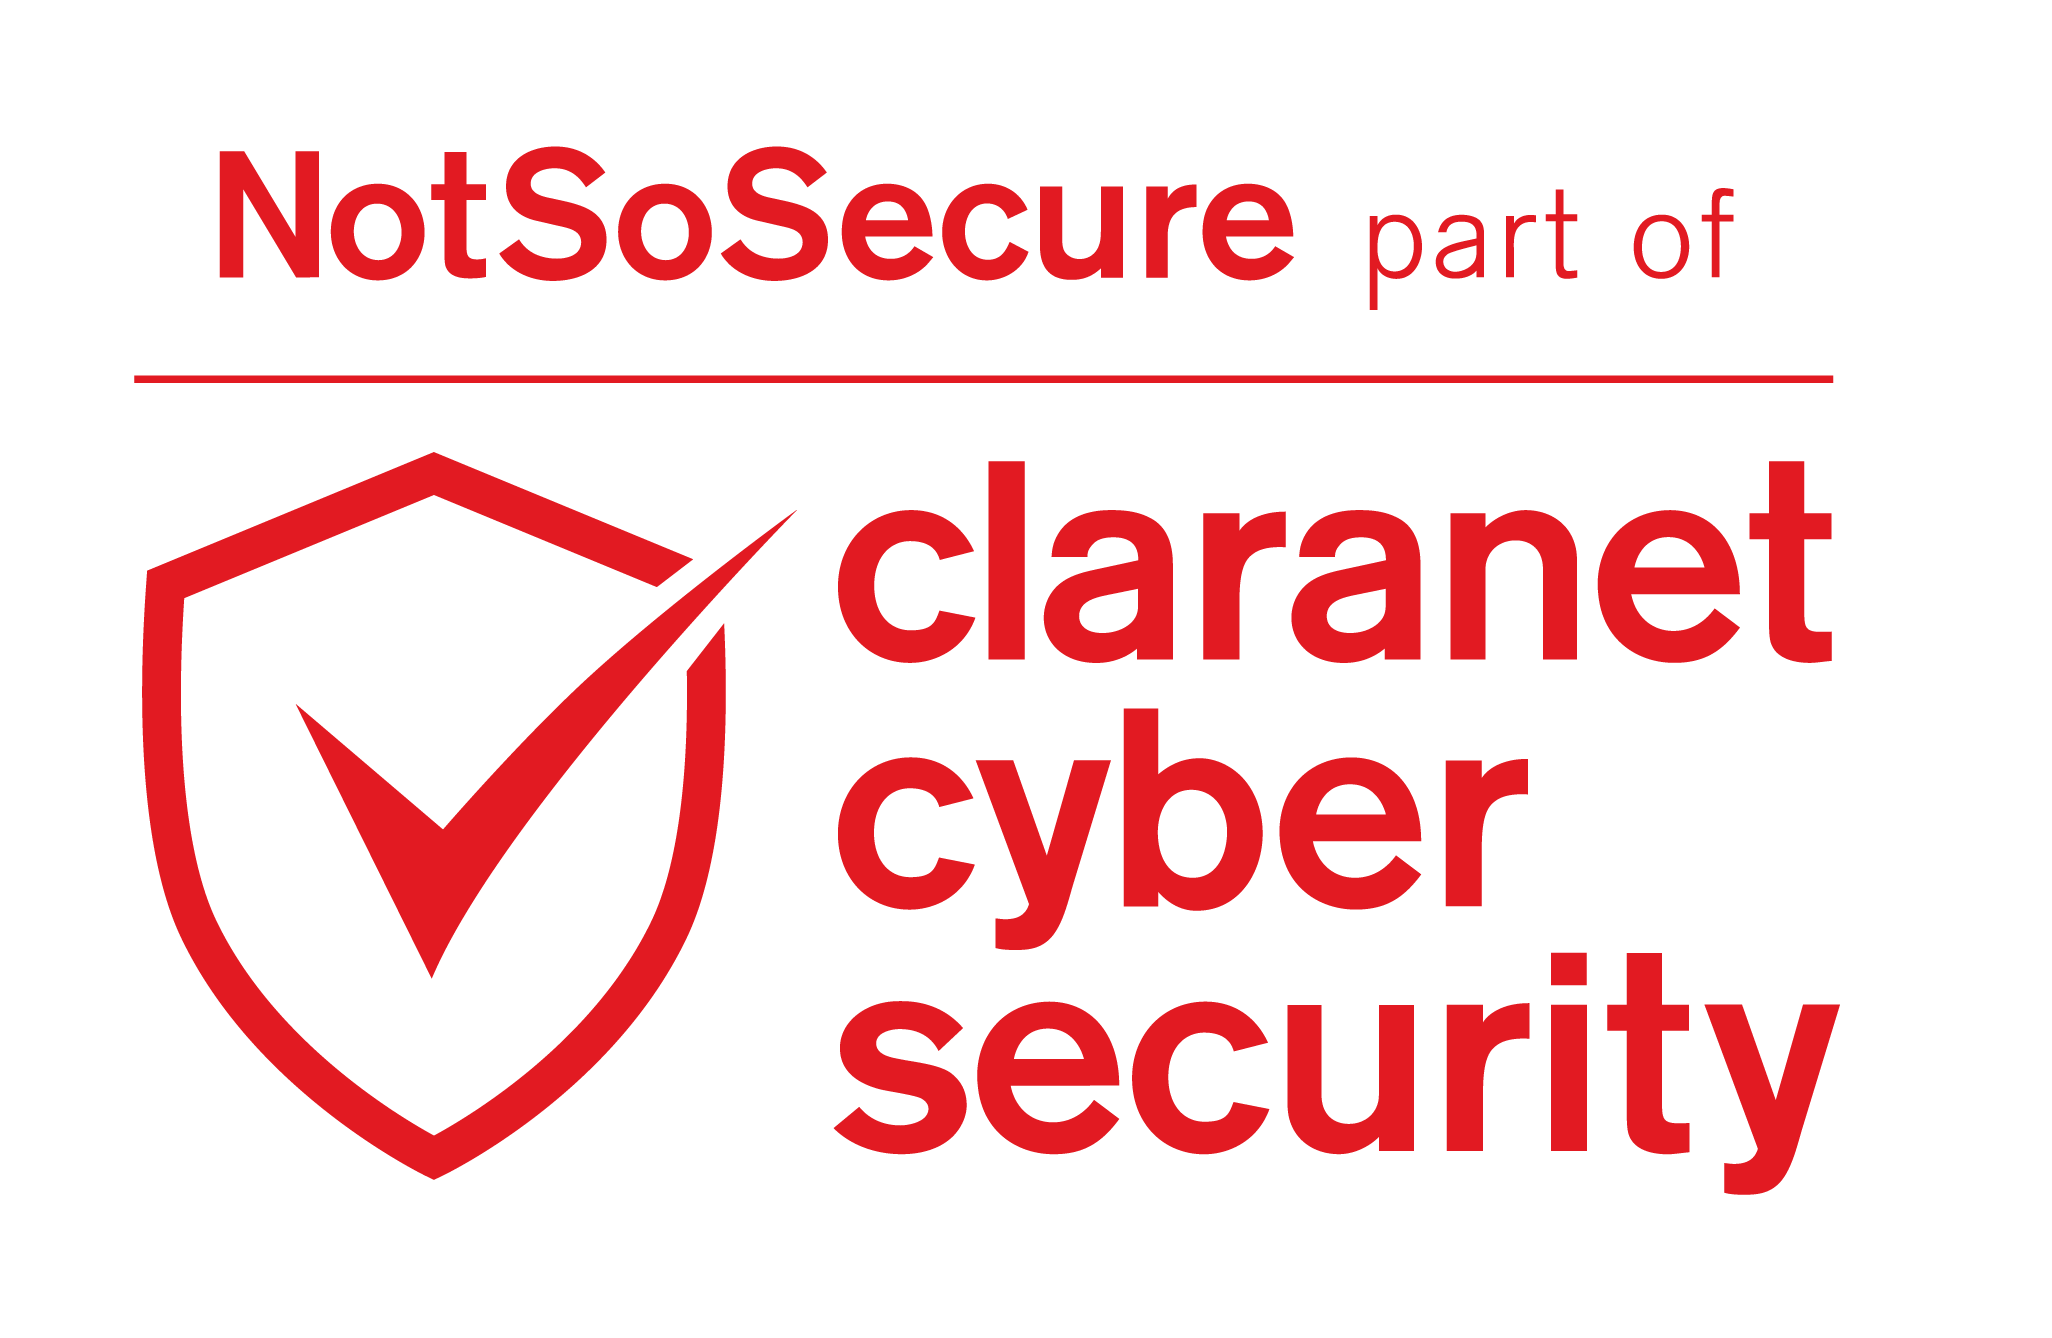 NotSoSecure part of claranet cyber security